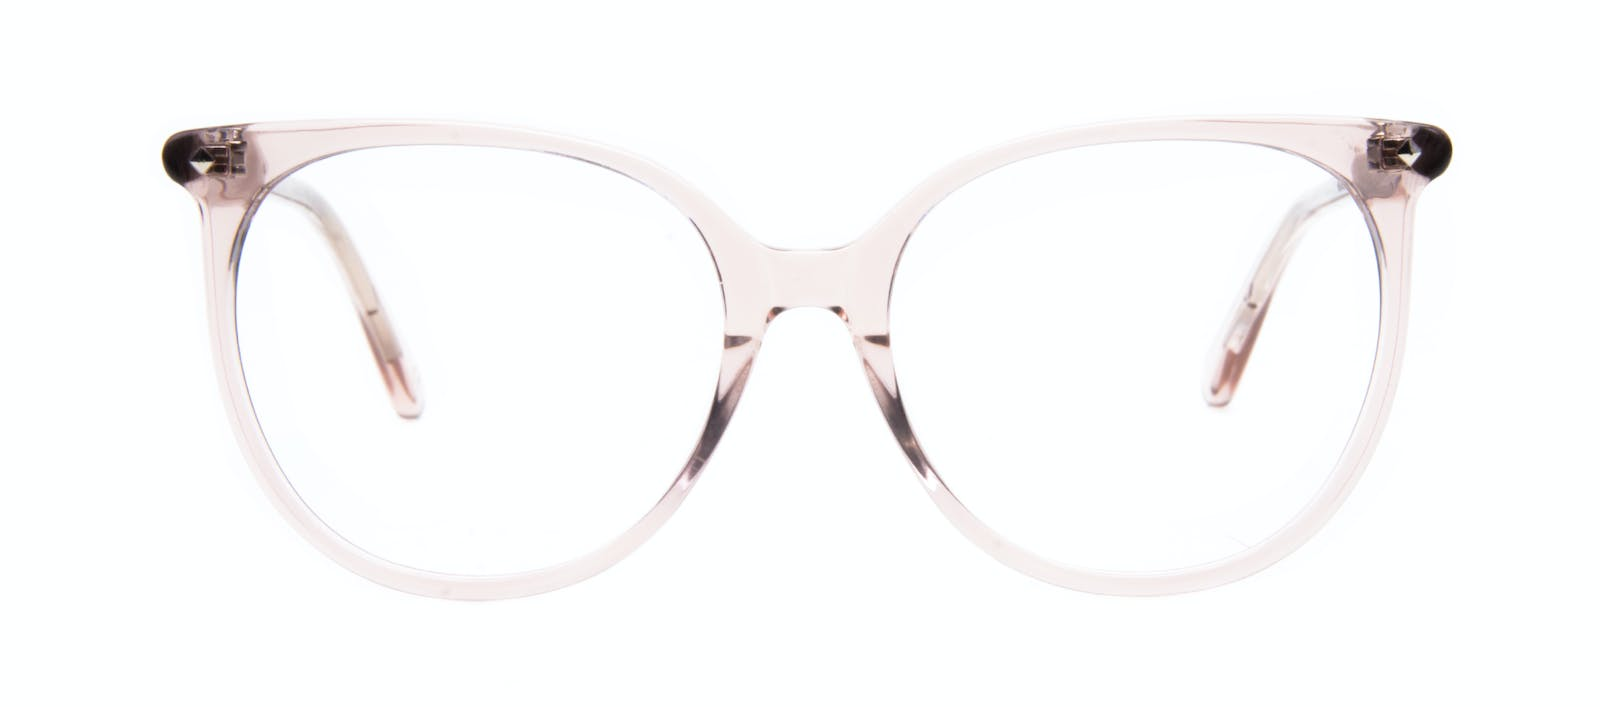 466a04d0dc1 Affordable Fashion Glasses Round Eyeglasses Women Area Rose Front